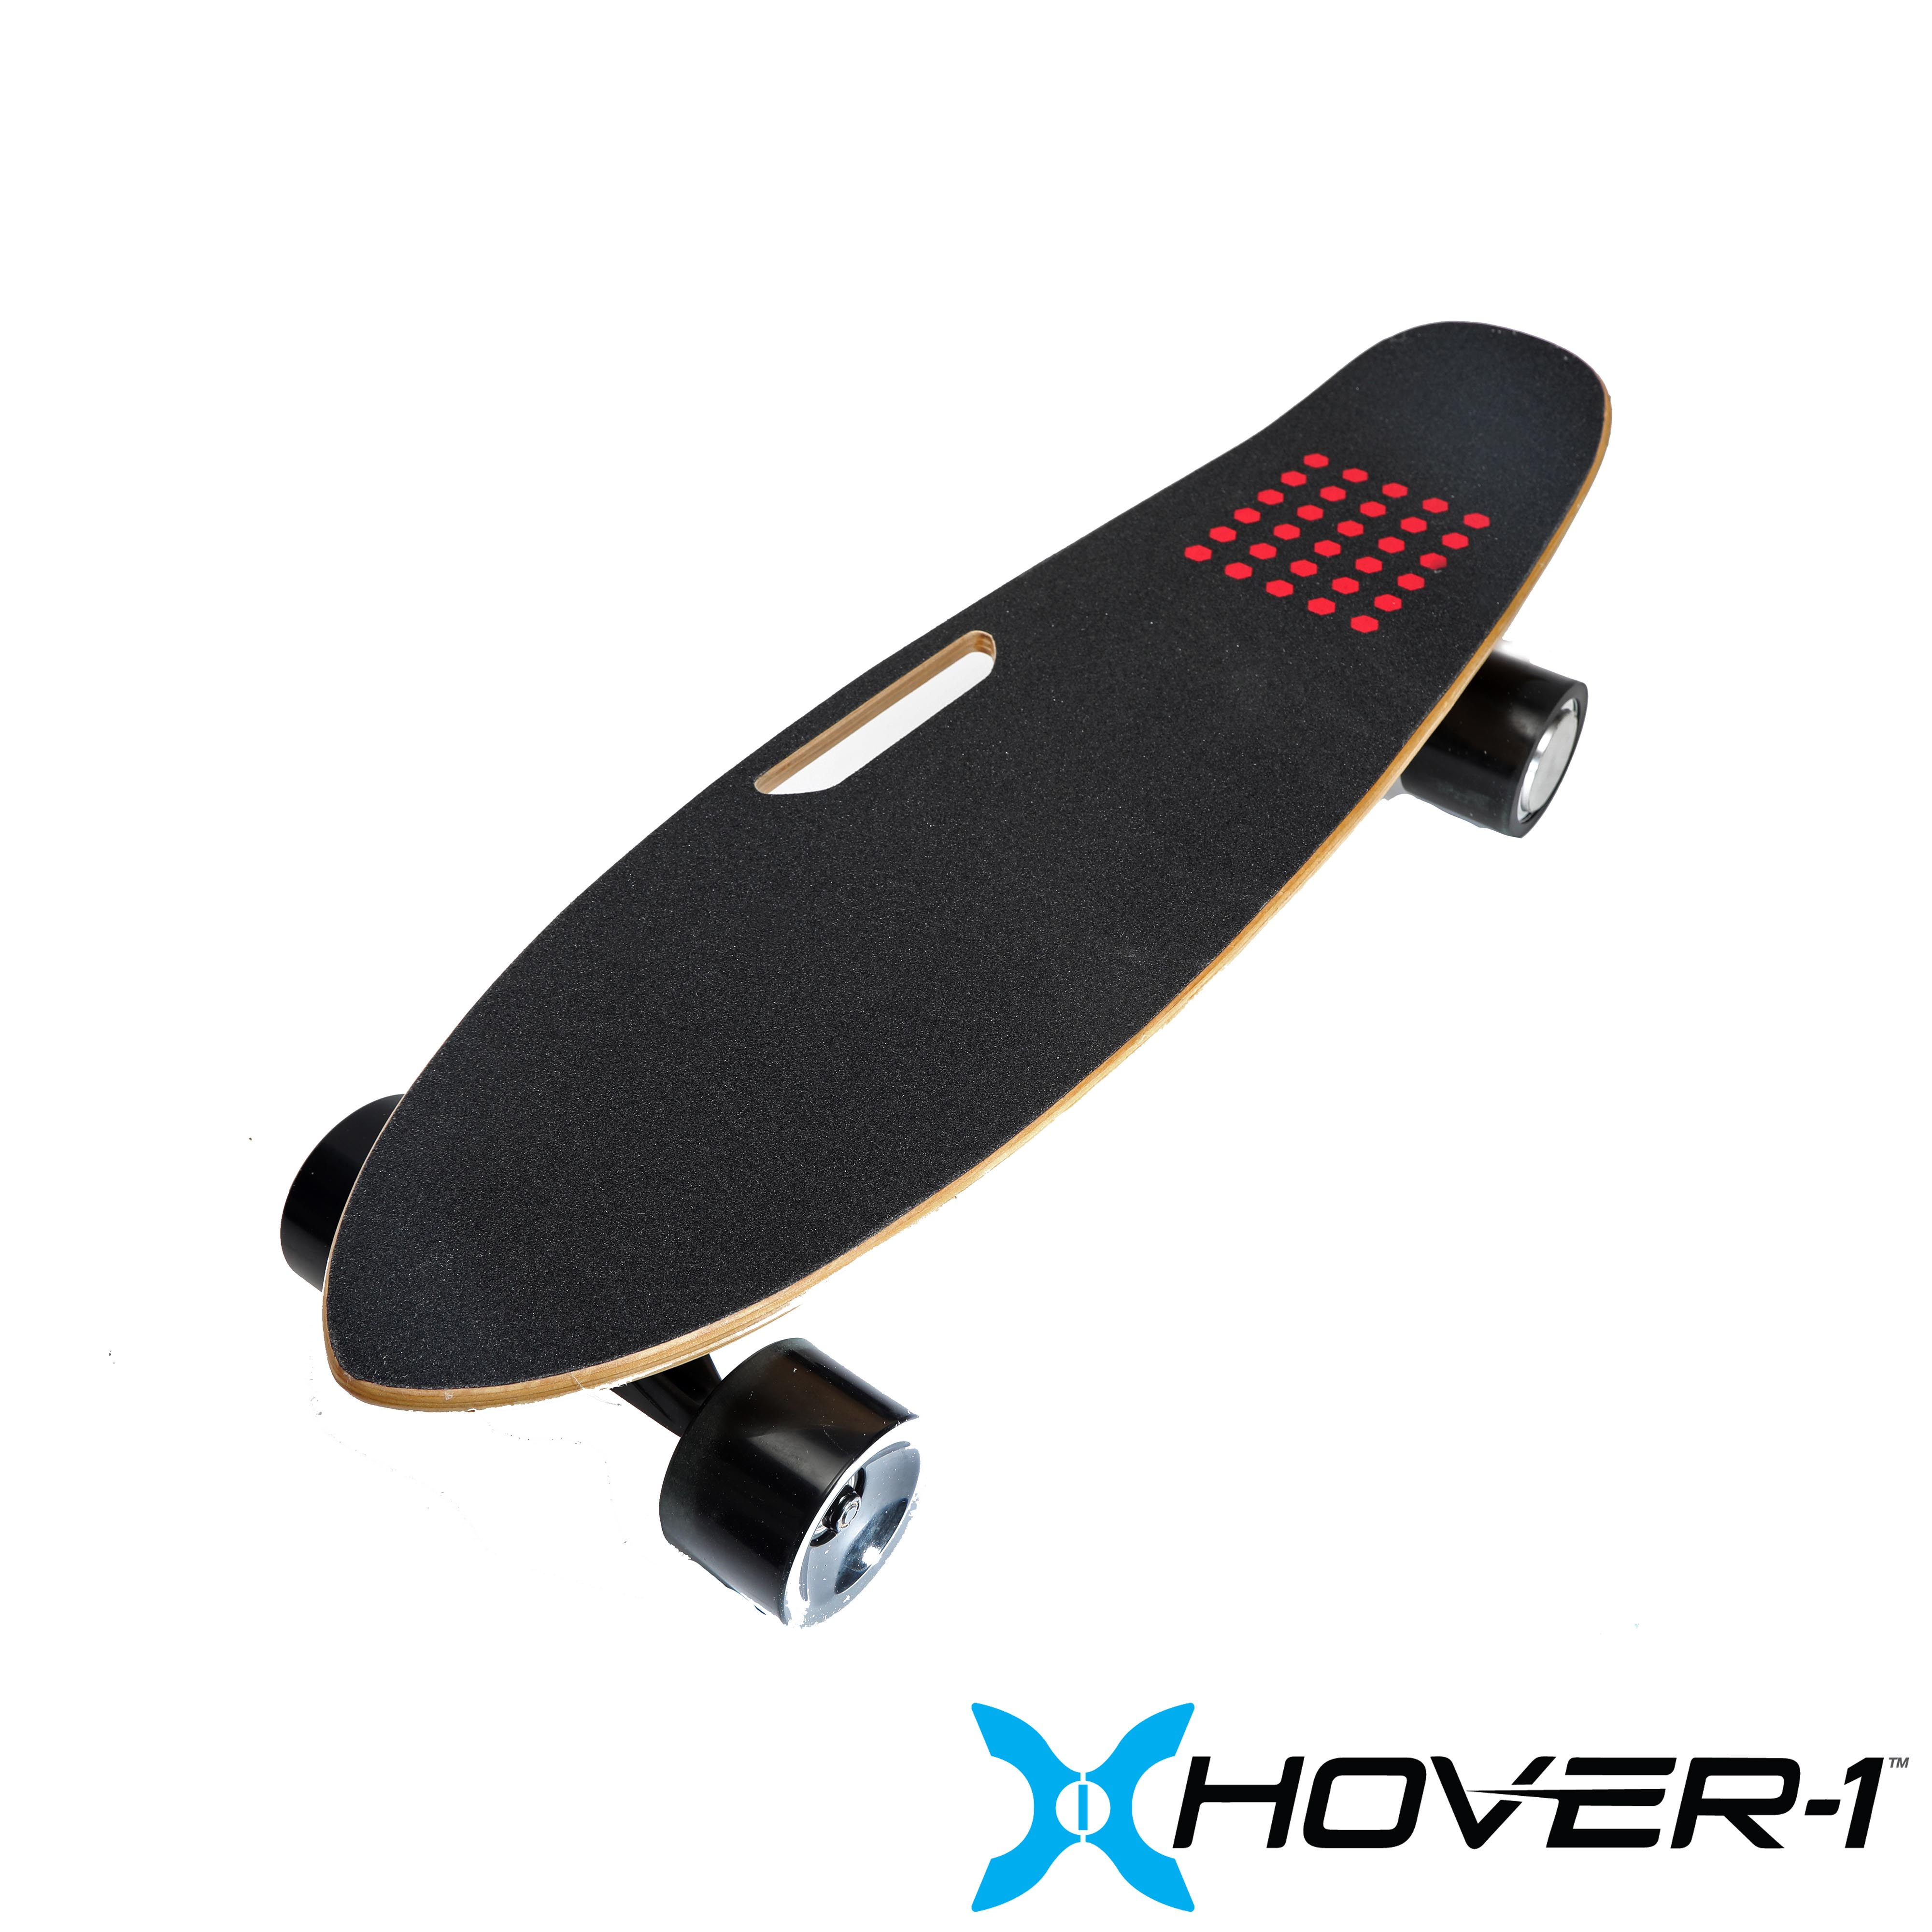 Hover-1 Cruze Electric Self Powered Skateboard with Carrying Handle by DGL